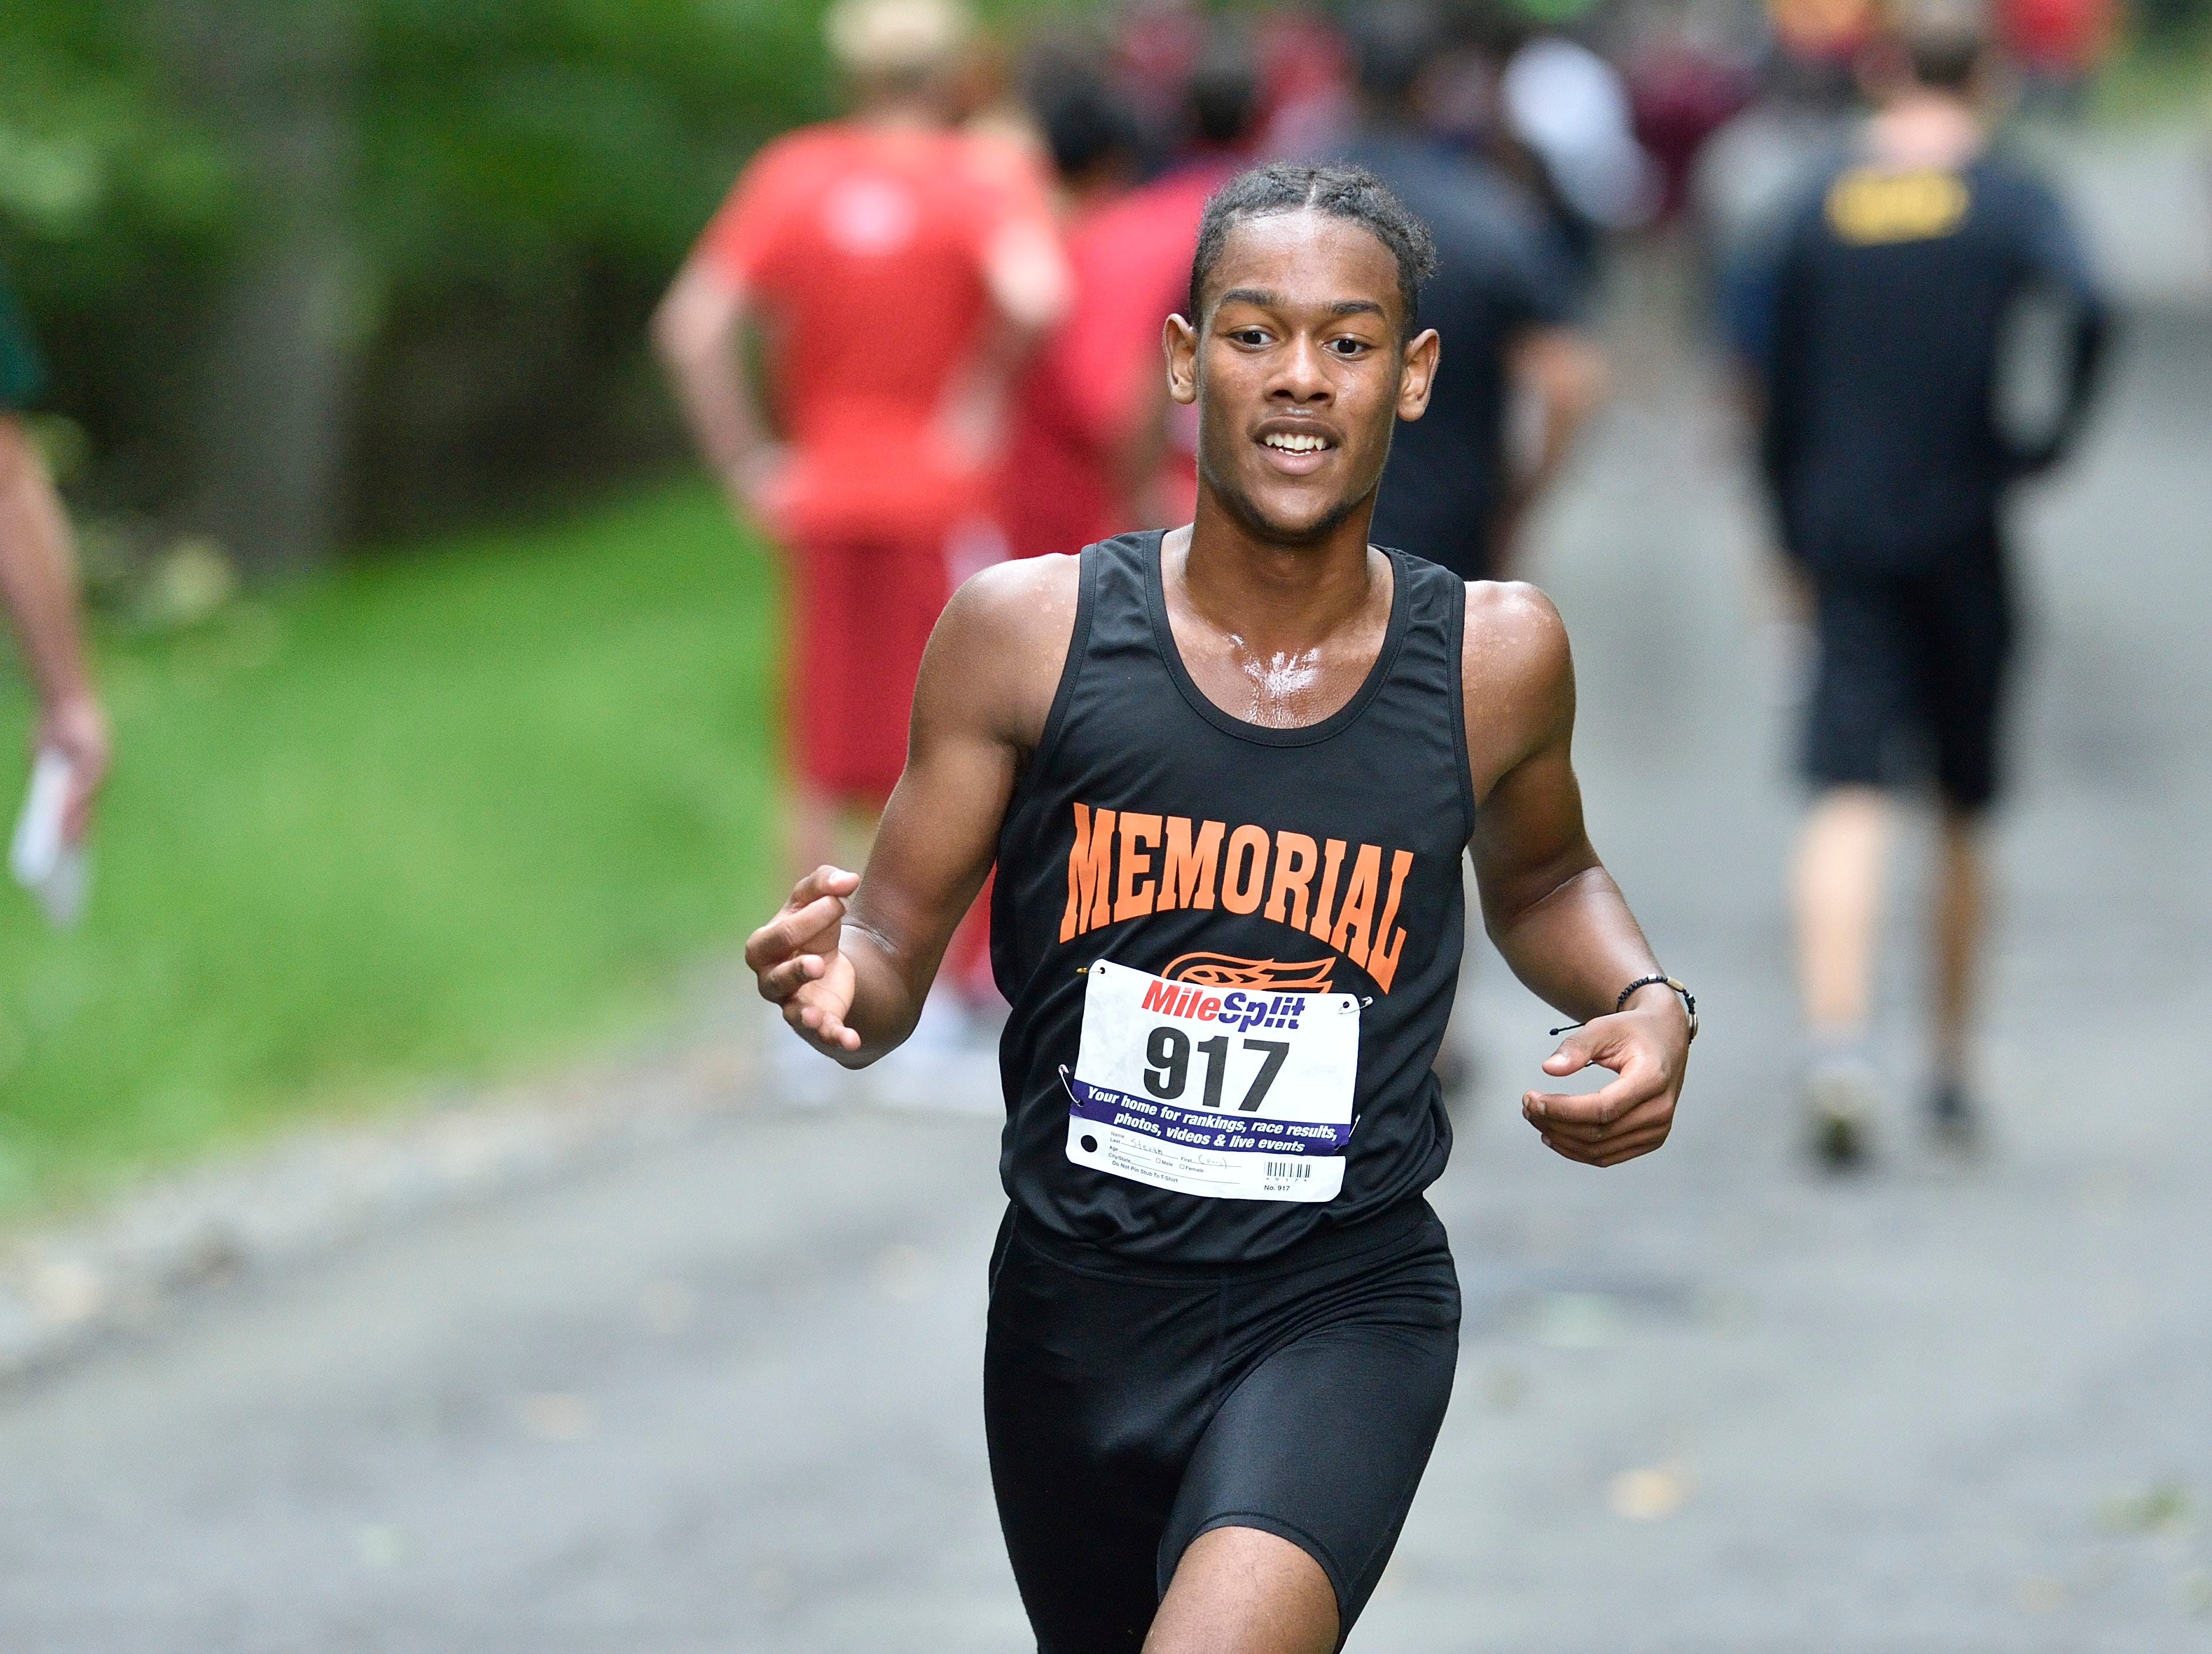 Steven Ventura of  Memorial HS W. Ny competes in the Boys Varsity A cross country race at Darlington County Park in Mahwah.